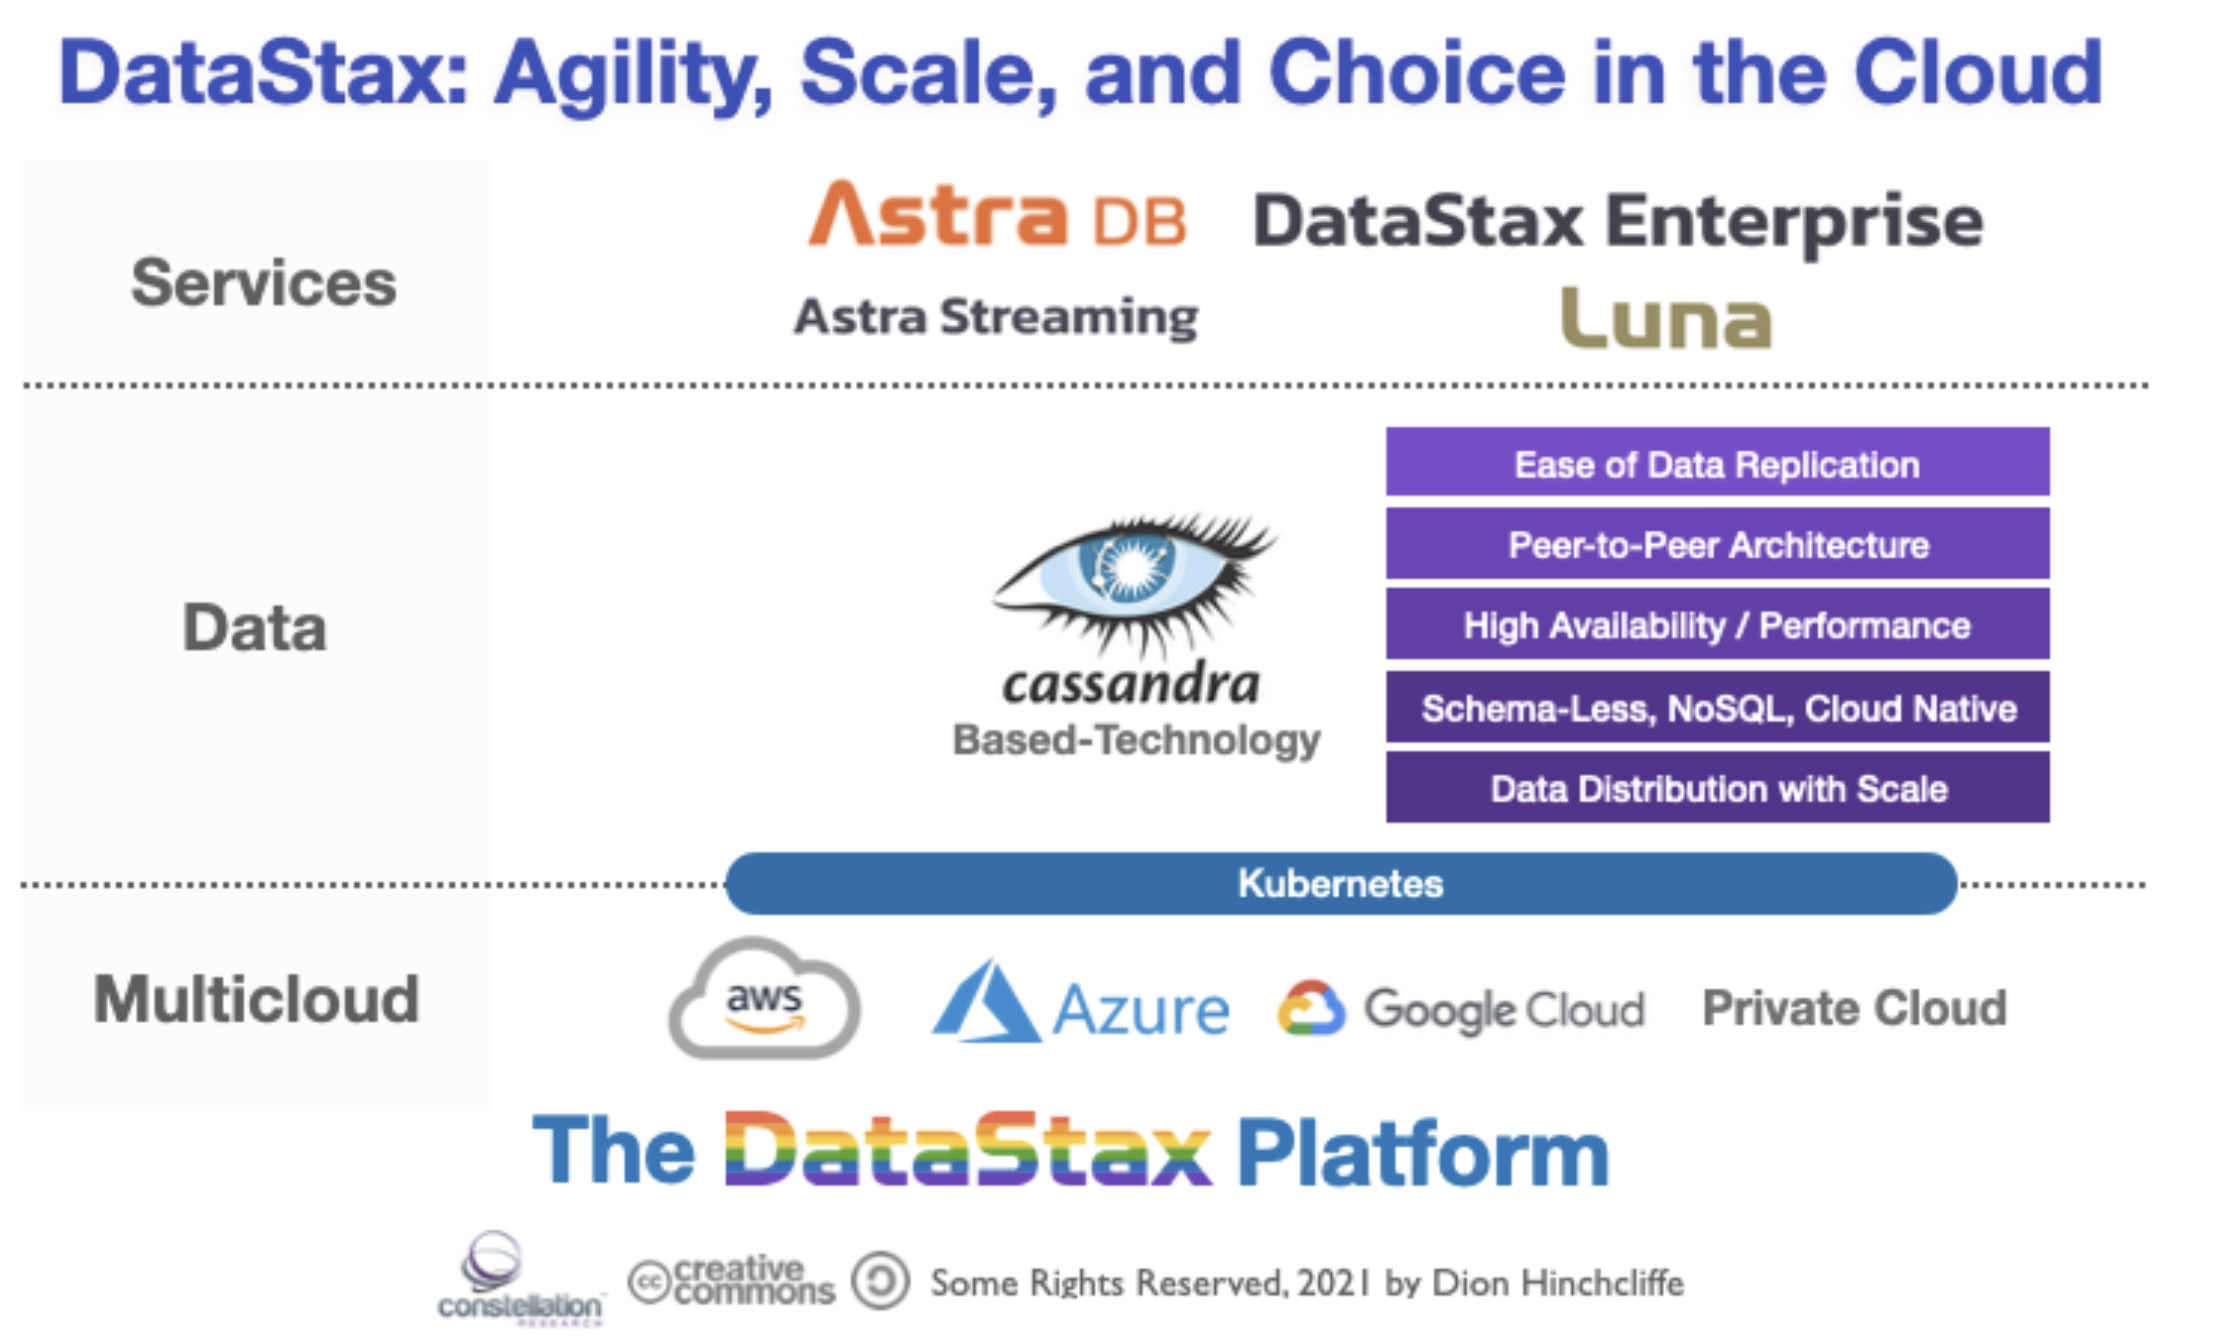 DataStax: Agility, Scale, and Choice in the Cloud